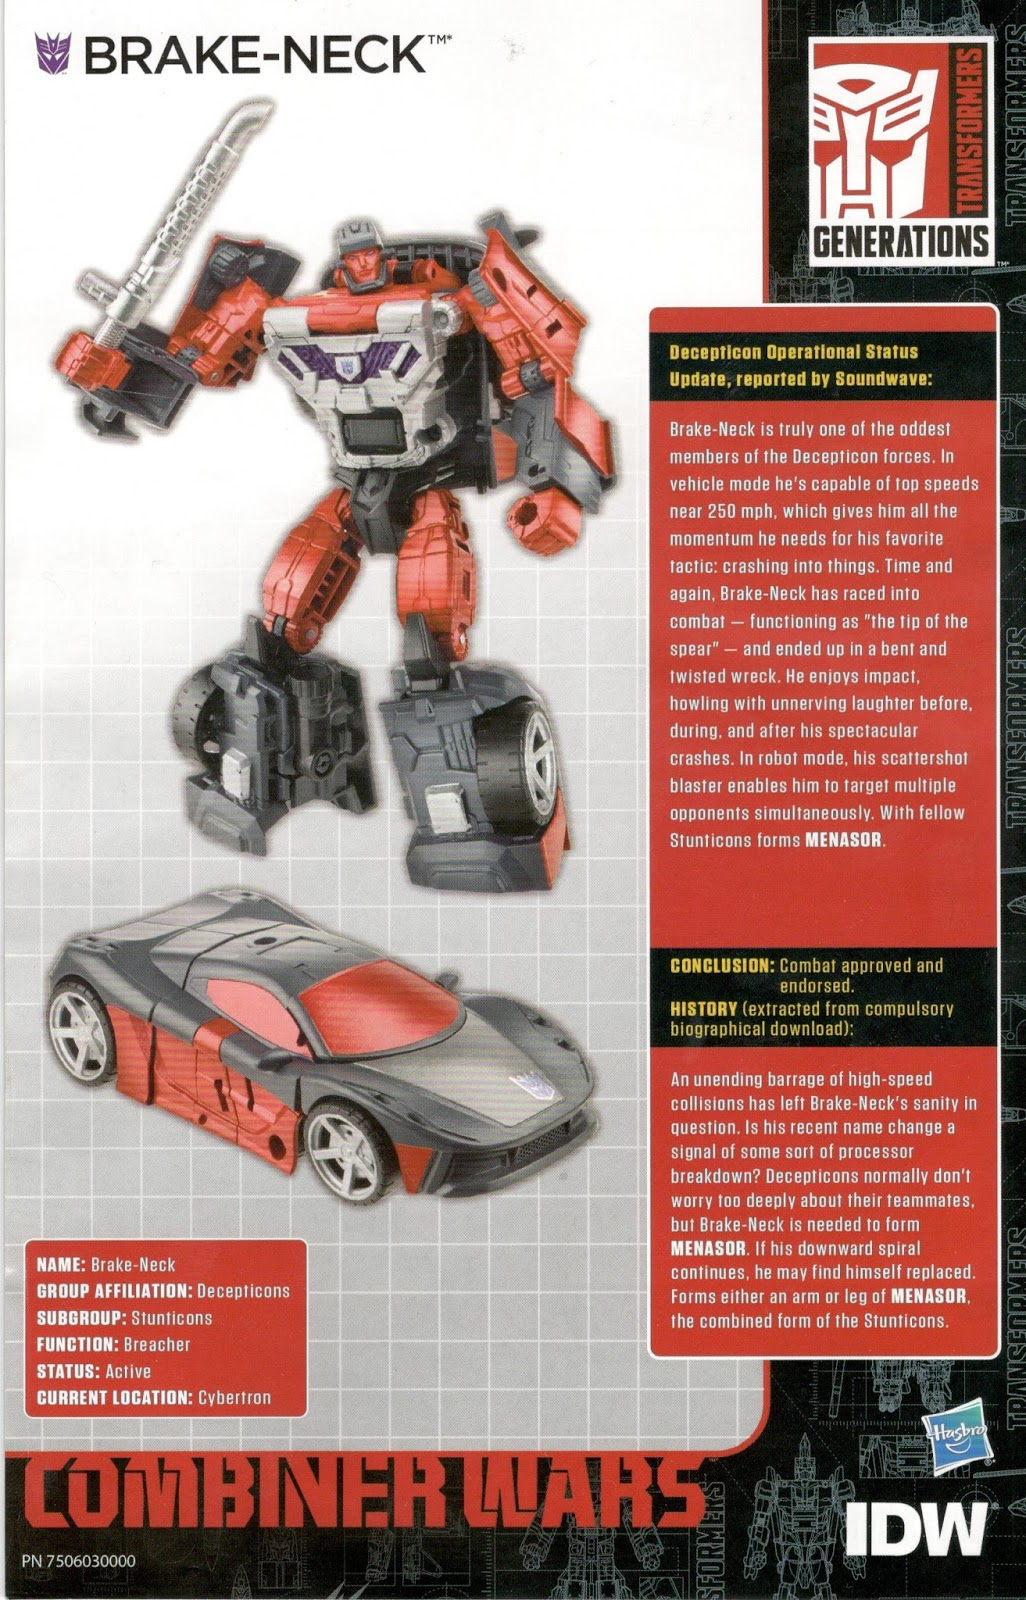 The Smallest Car In The World >> Transformers Bio Card Database: IDW Combiner Wars Bios